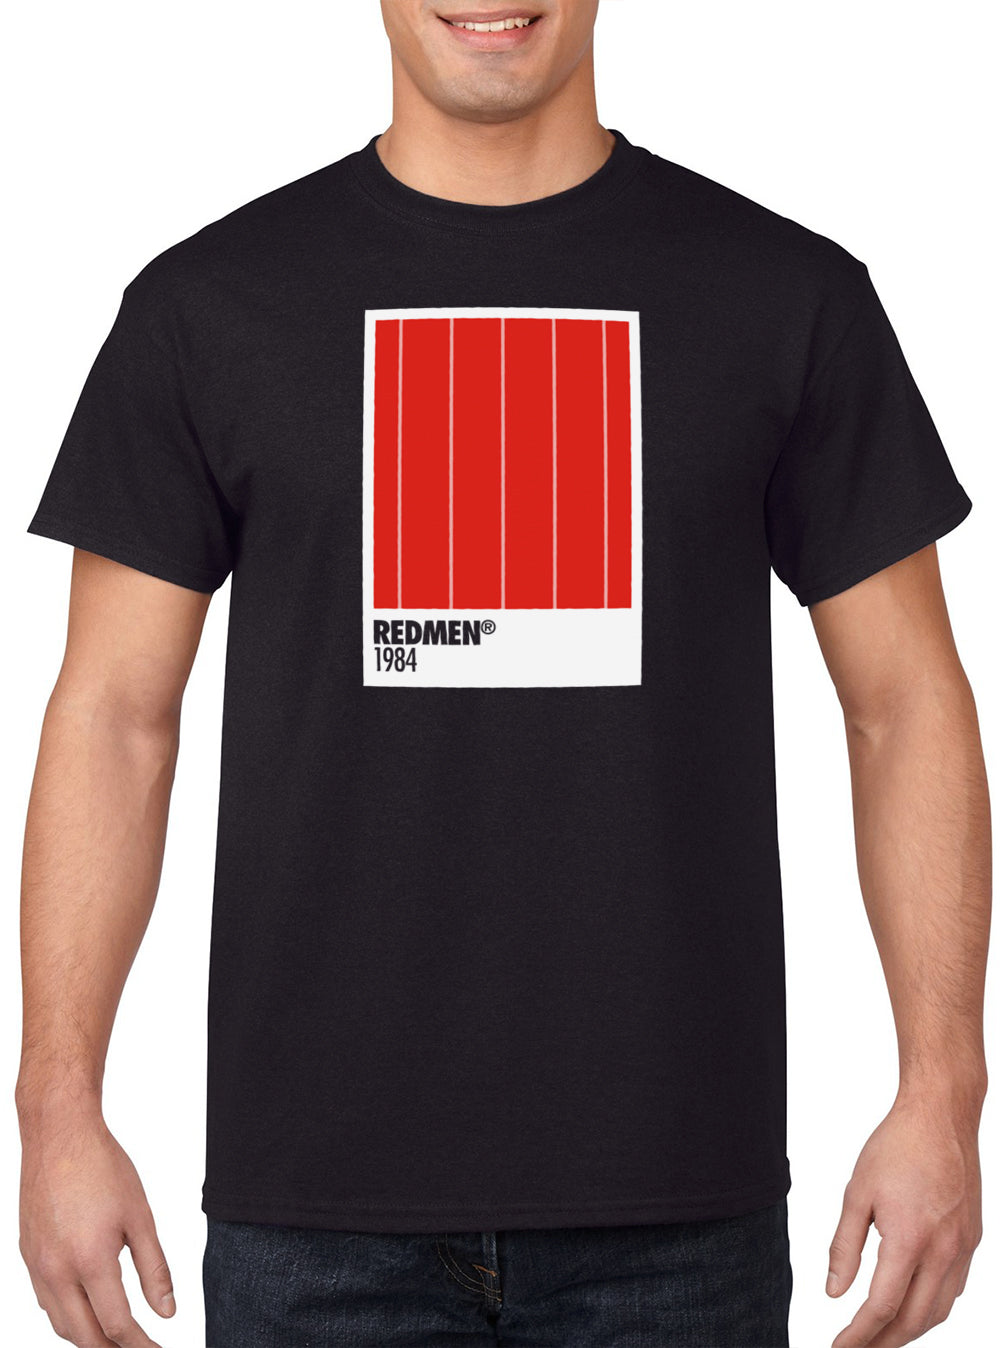 03 ALL MY COLOURS 'Redmen 1984 Homefront' Edition Tee